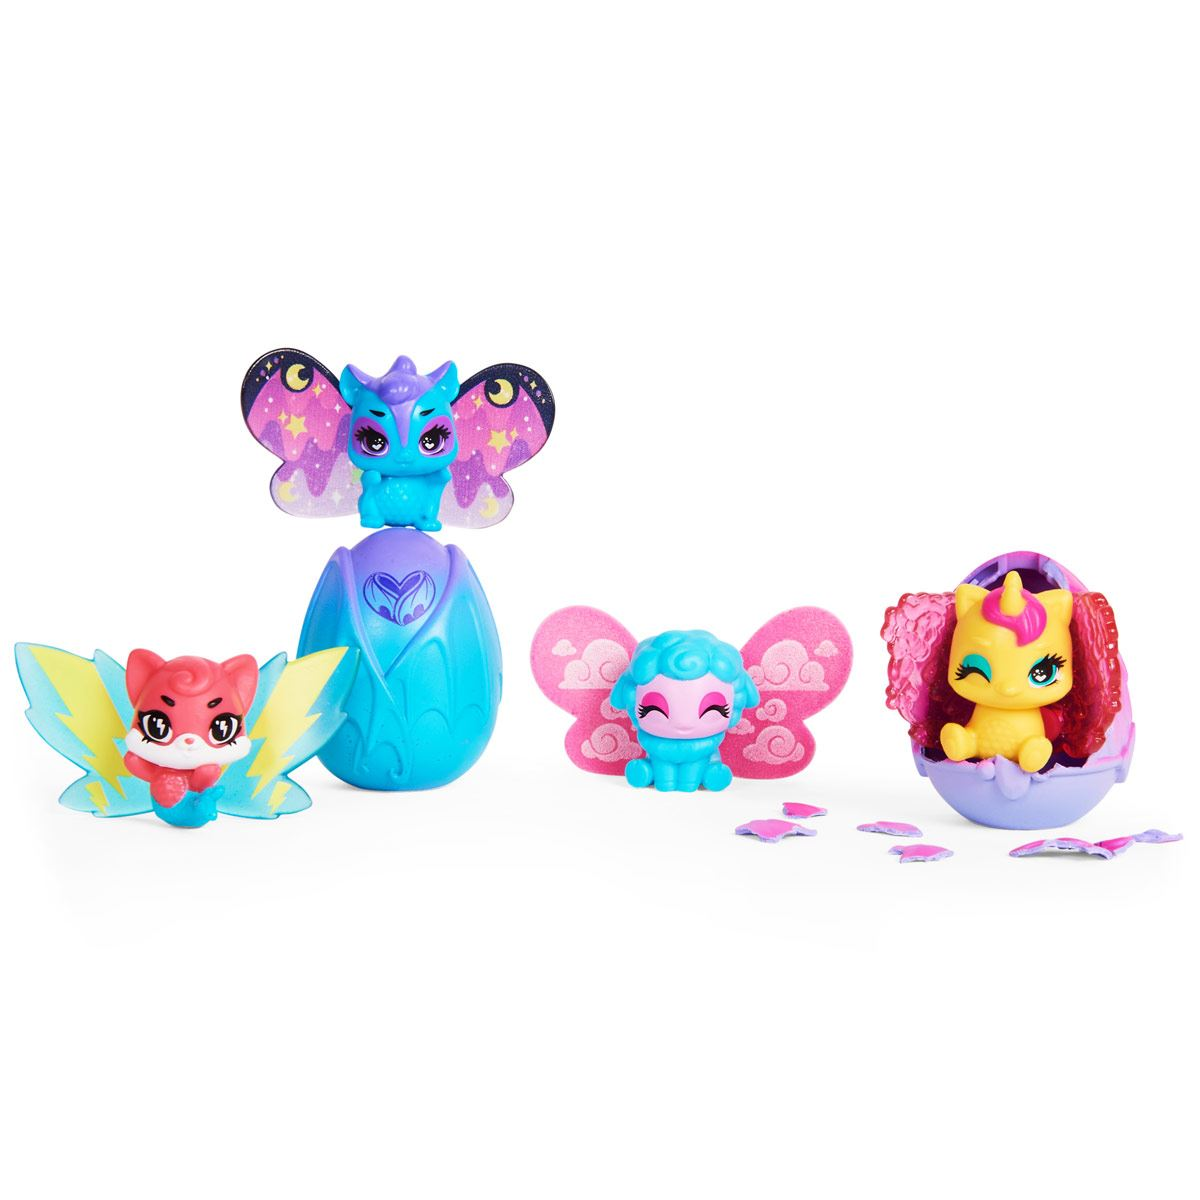 Wilder Wings 1 coleccionable Spin Master 6059011